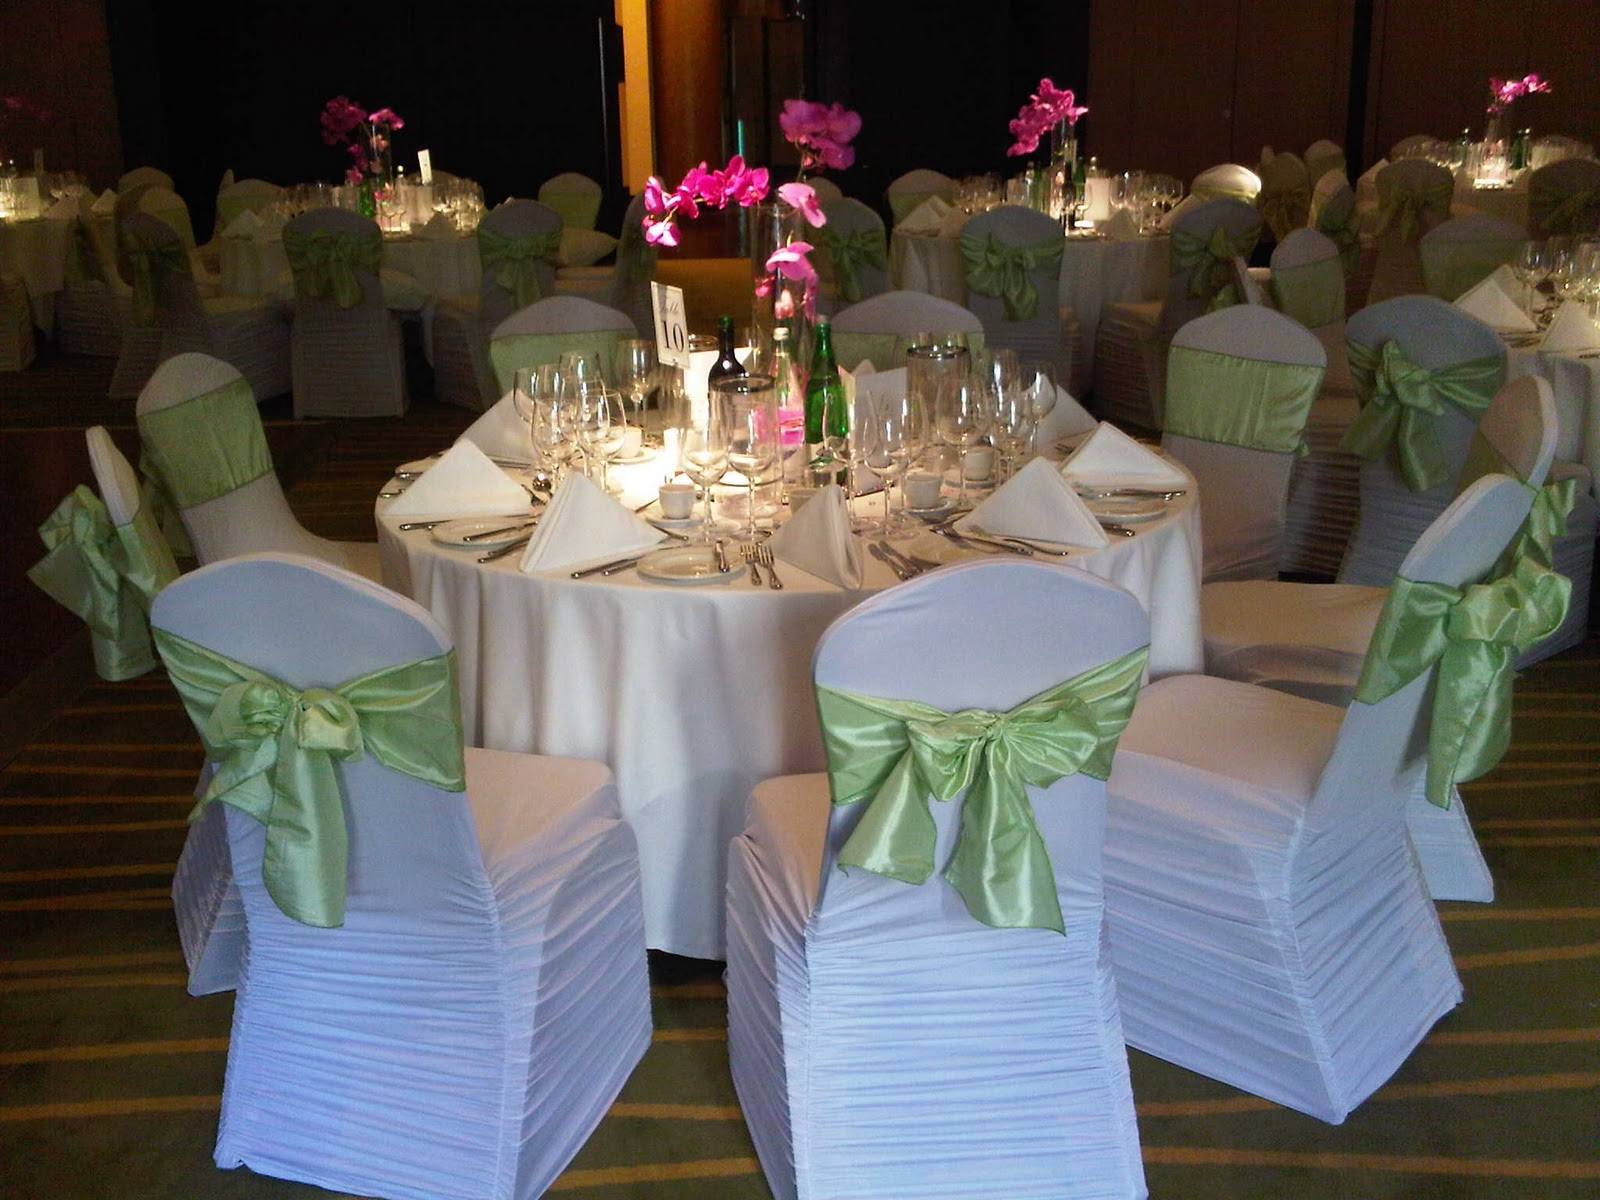 wedding chair covers gloucester stryker evacuation hannah michael weddings and events